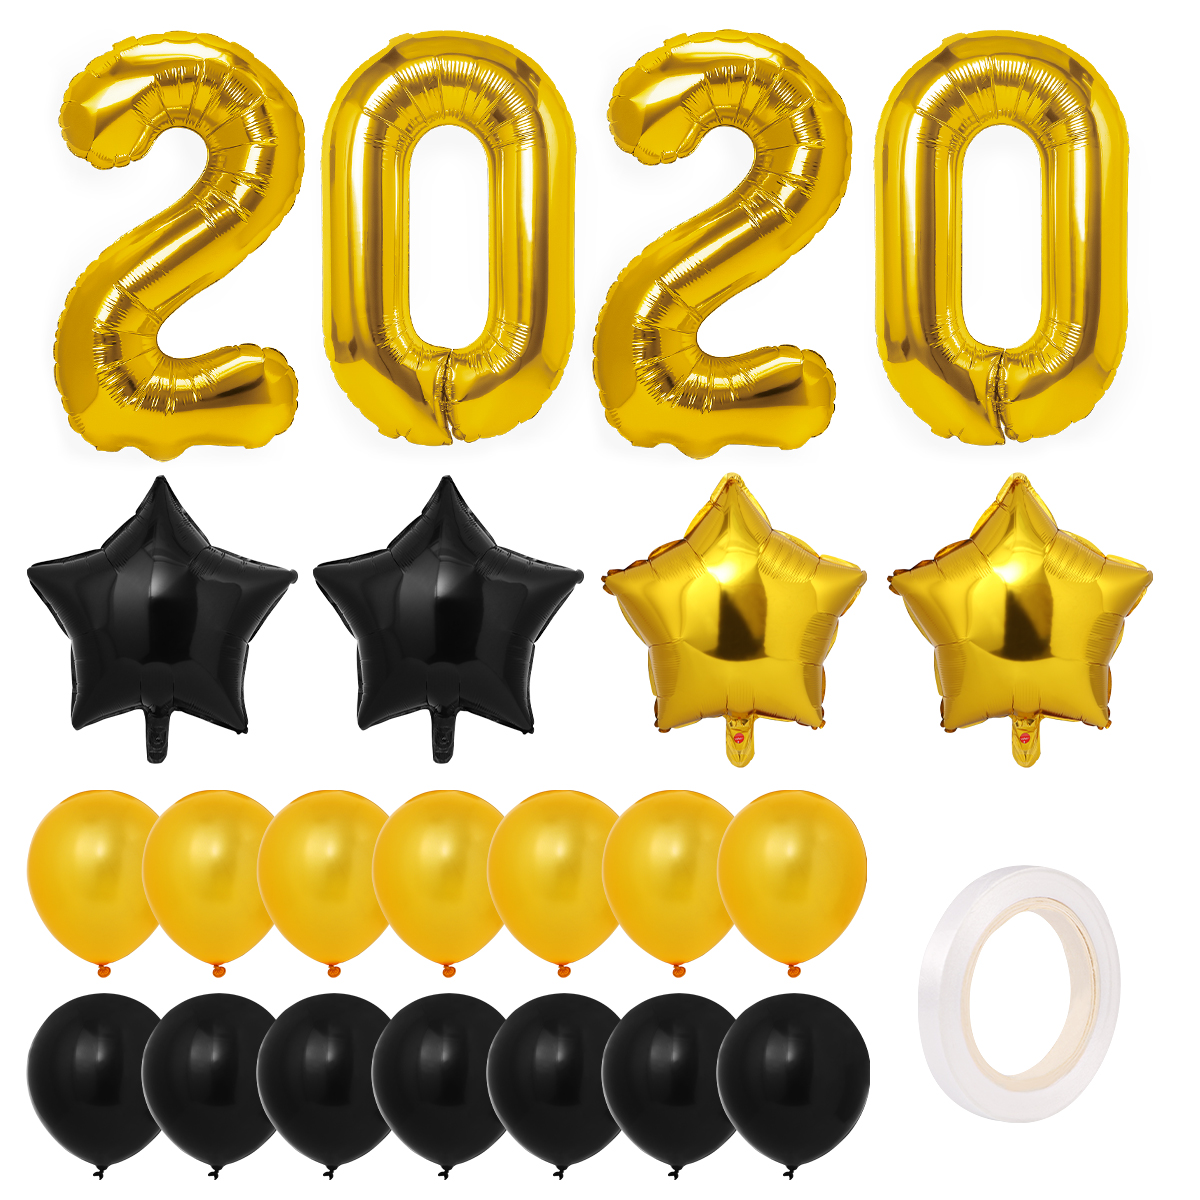 Toyvian 2020 Balloon Decorations Set Metallic New Years ...